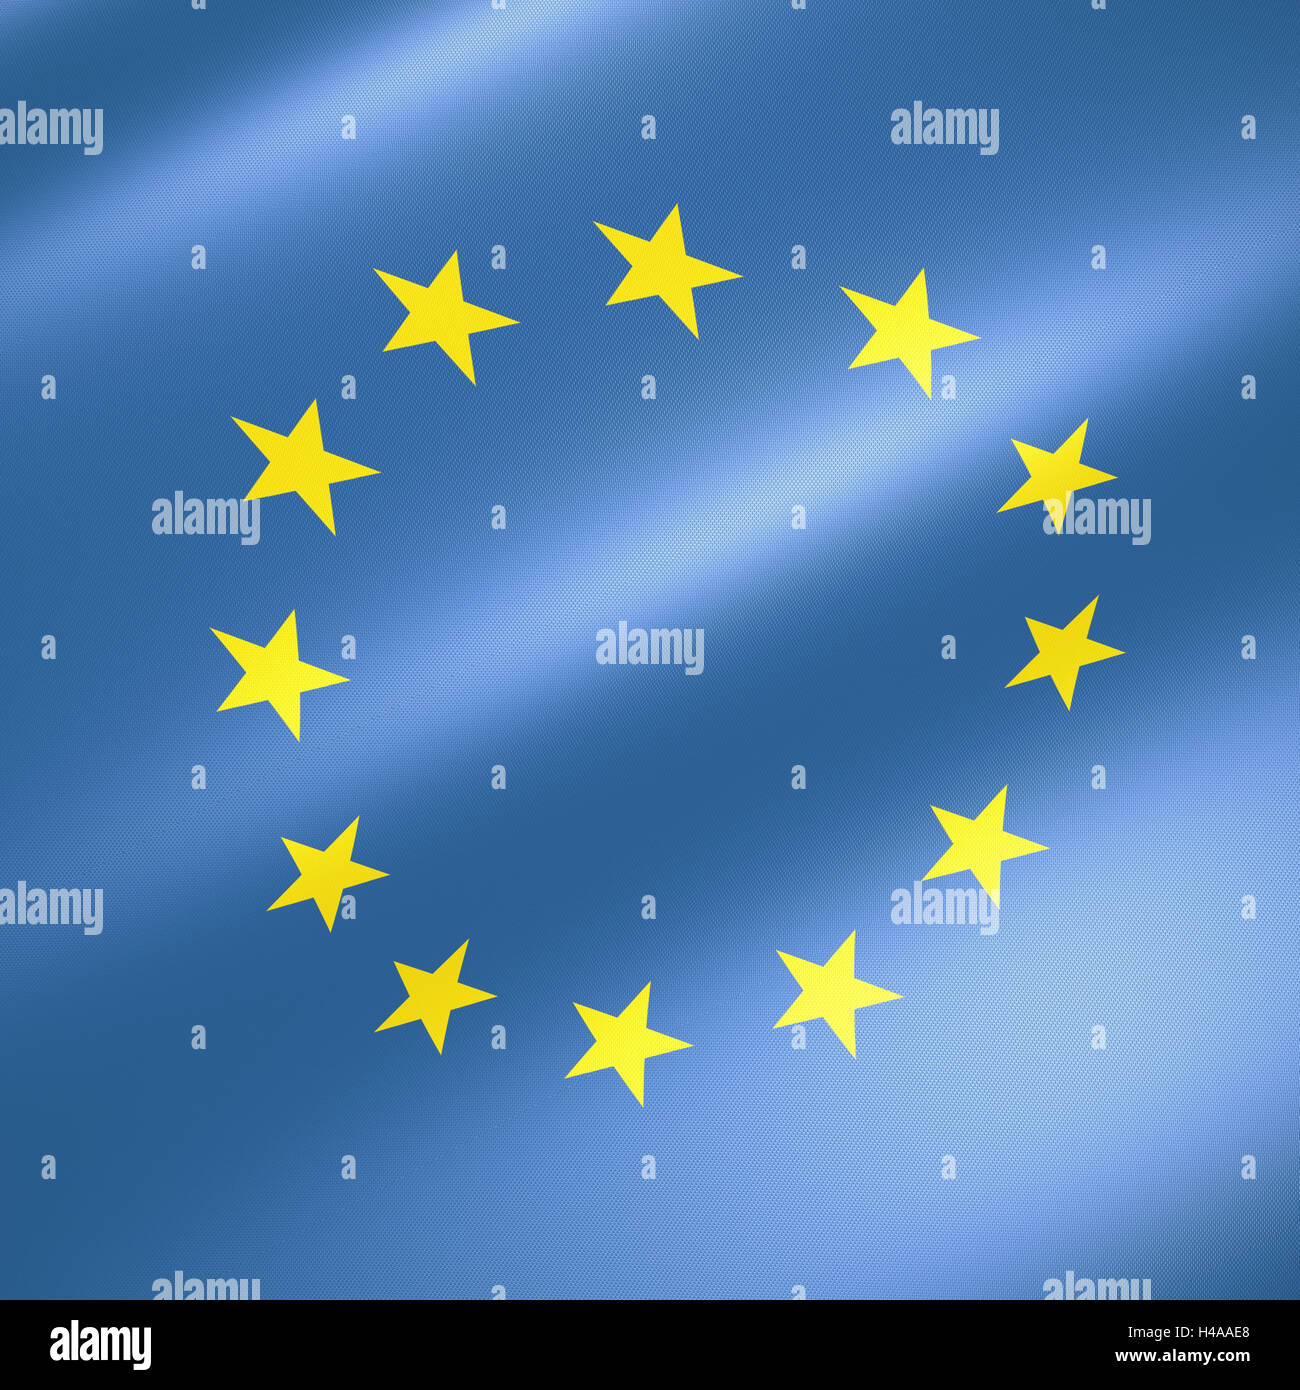 Flag the European Union, - Stock Image